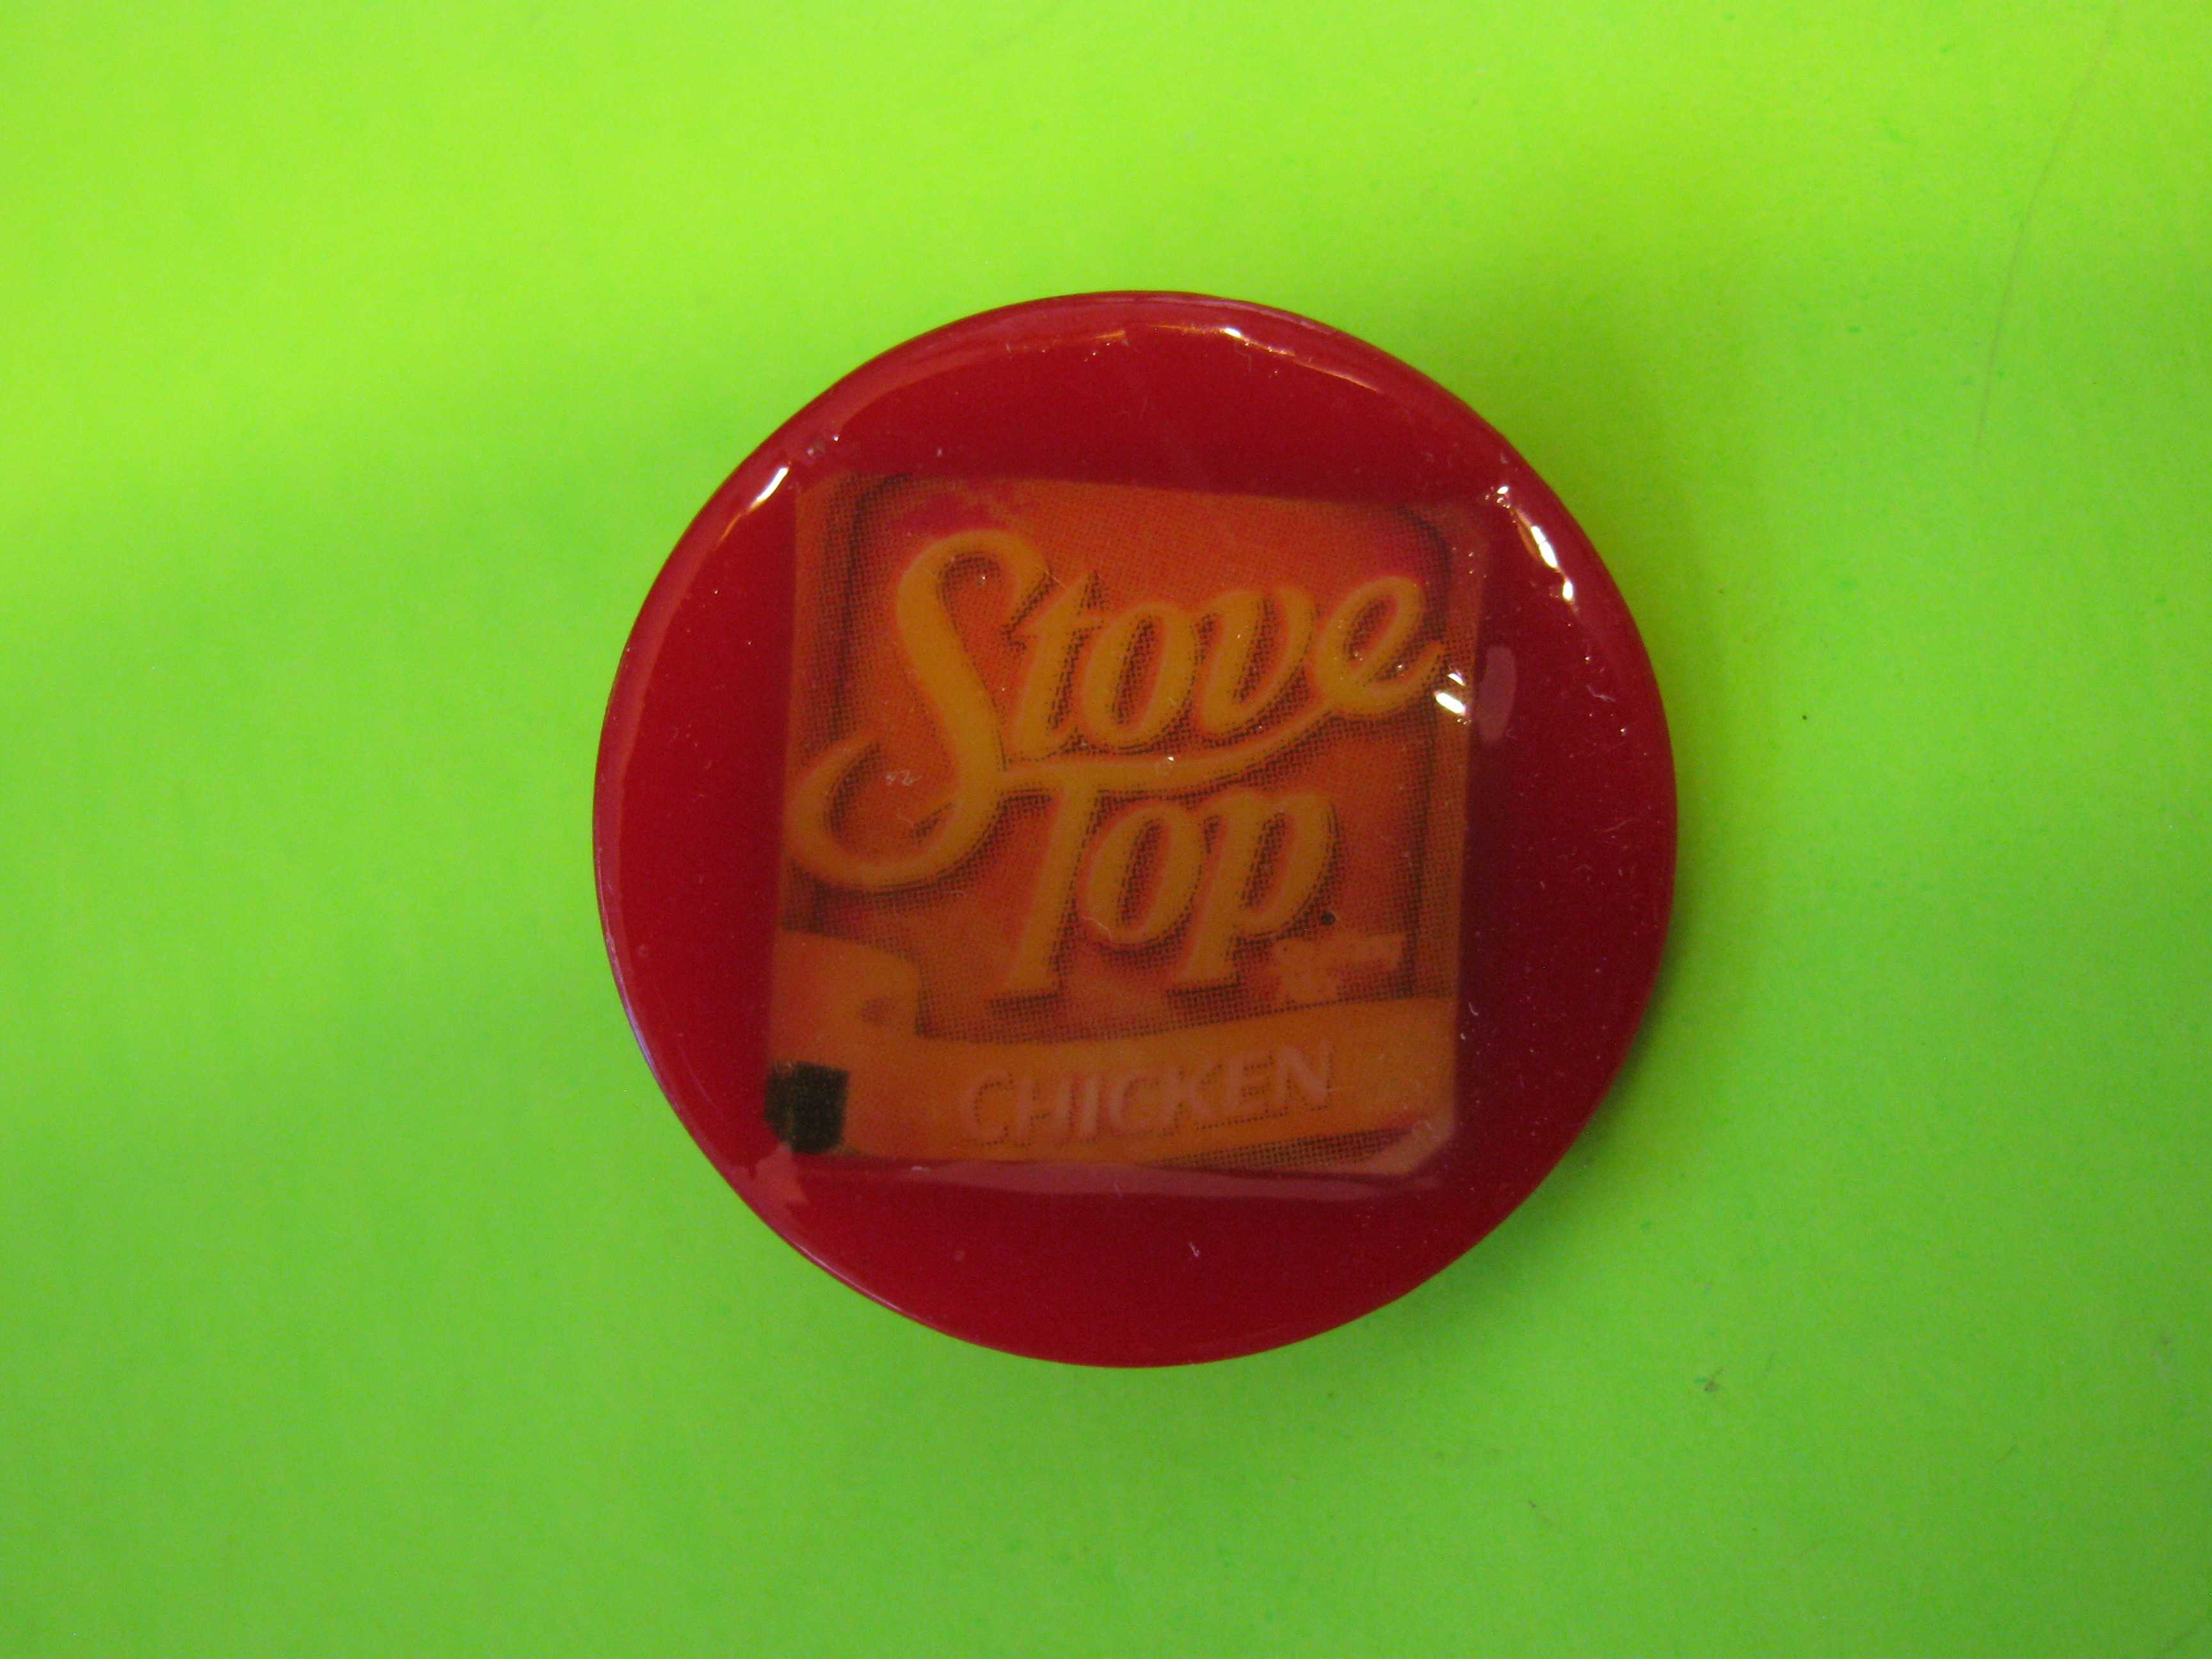 Stove Top Brand Promo Button Plastic with Claw Shank